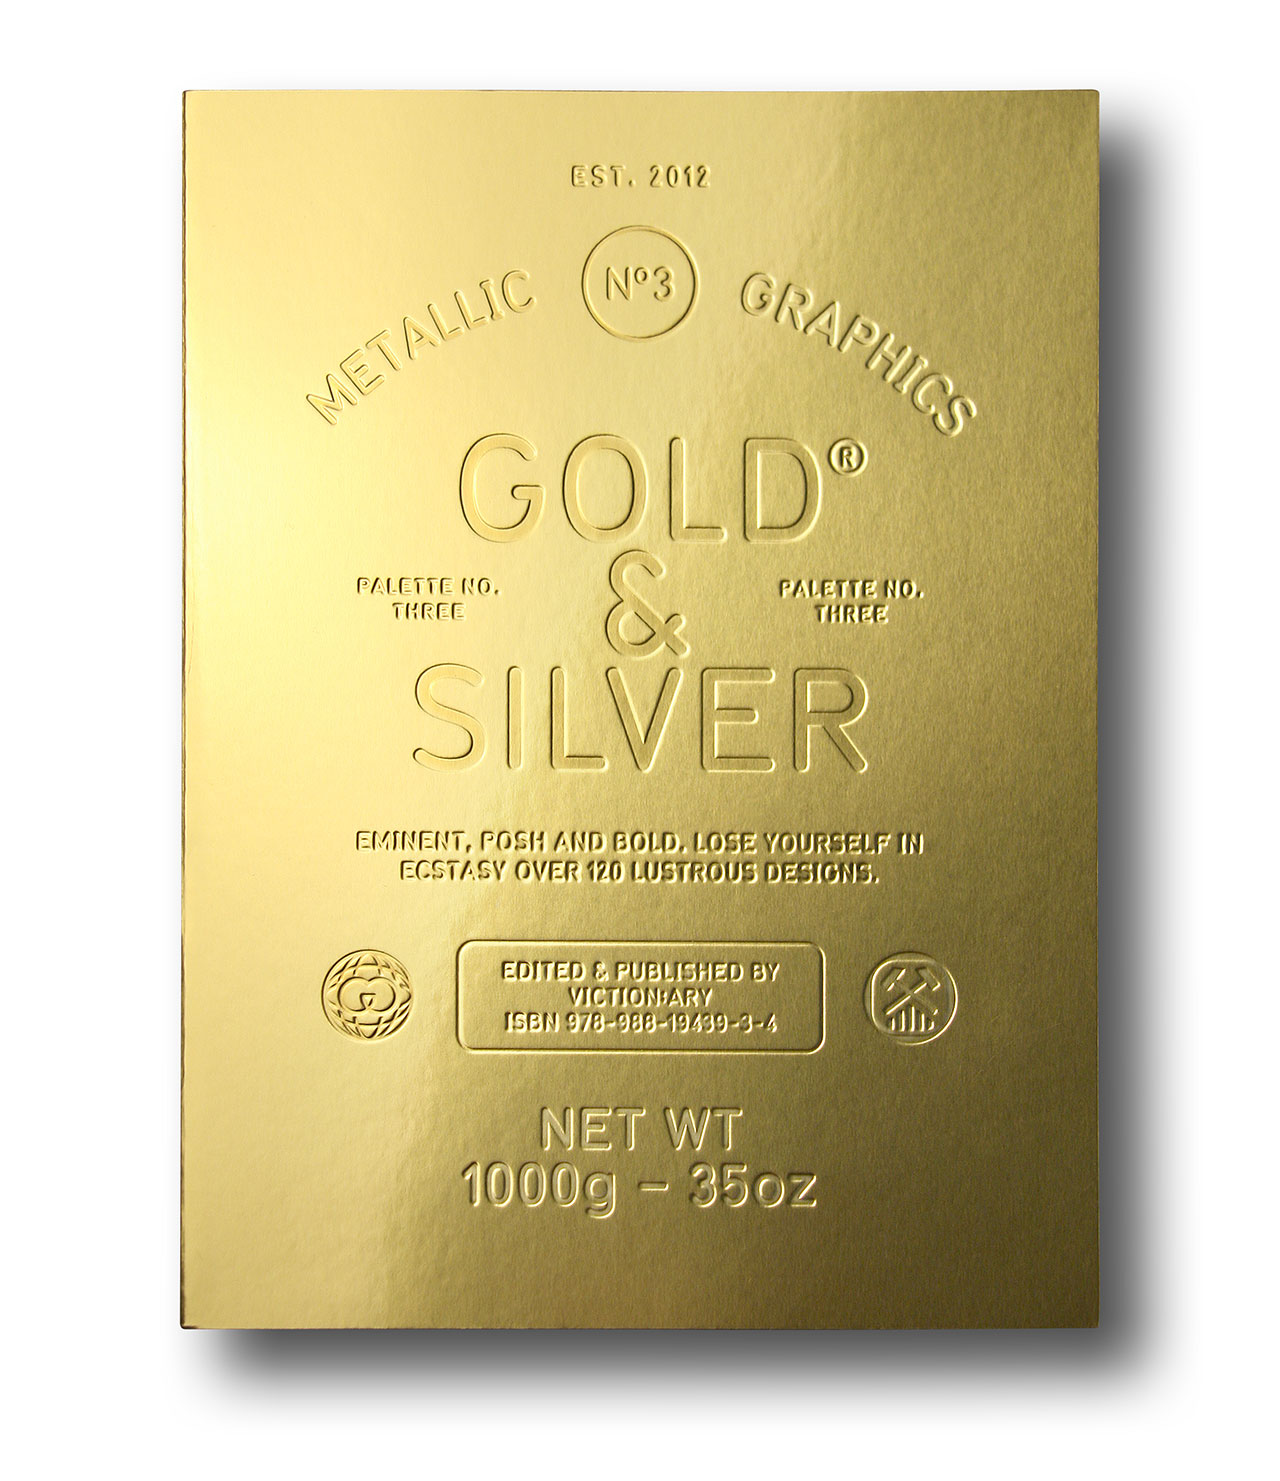 Buying Silver vs. Gold as an Investment